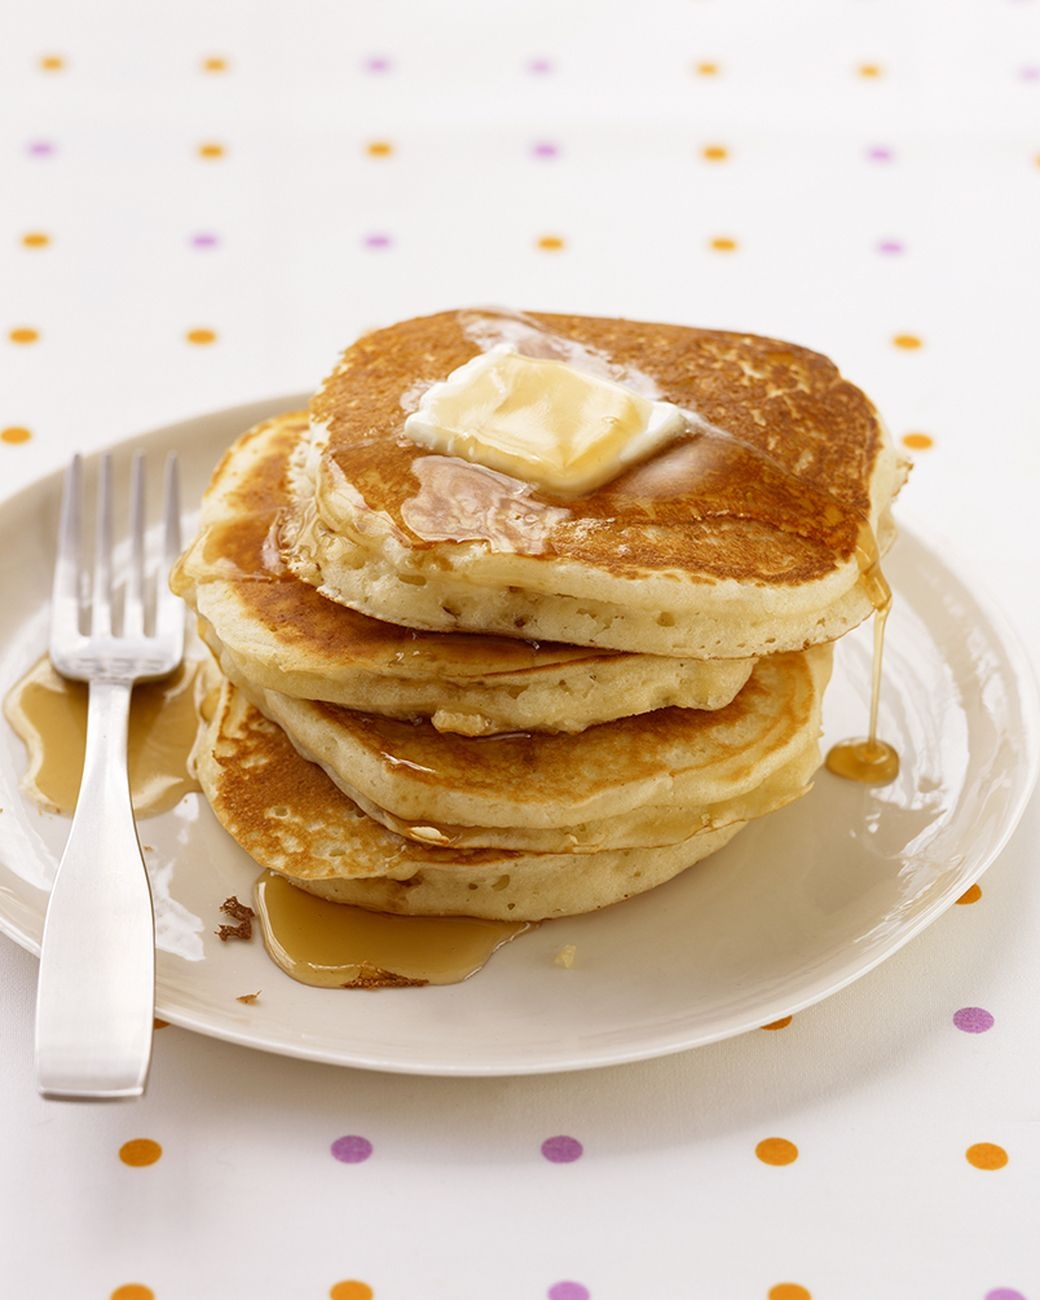 """Nothing says """"weekend"""" like homemade pancakes for breakfast. Our easy pancake recipe will help you whip up this weekend favorite in less than 30 minutes. You'll wonder why you never tried this before!"""